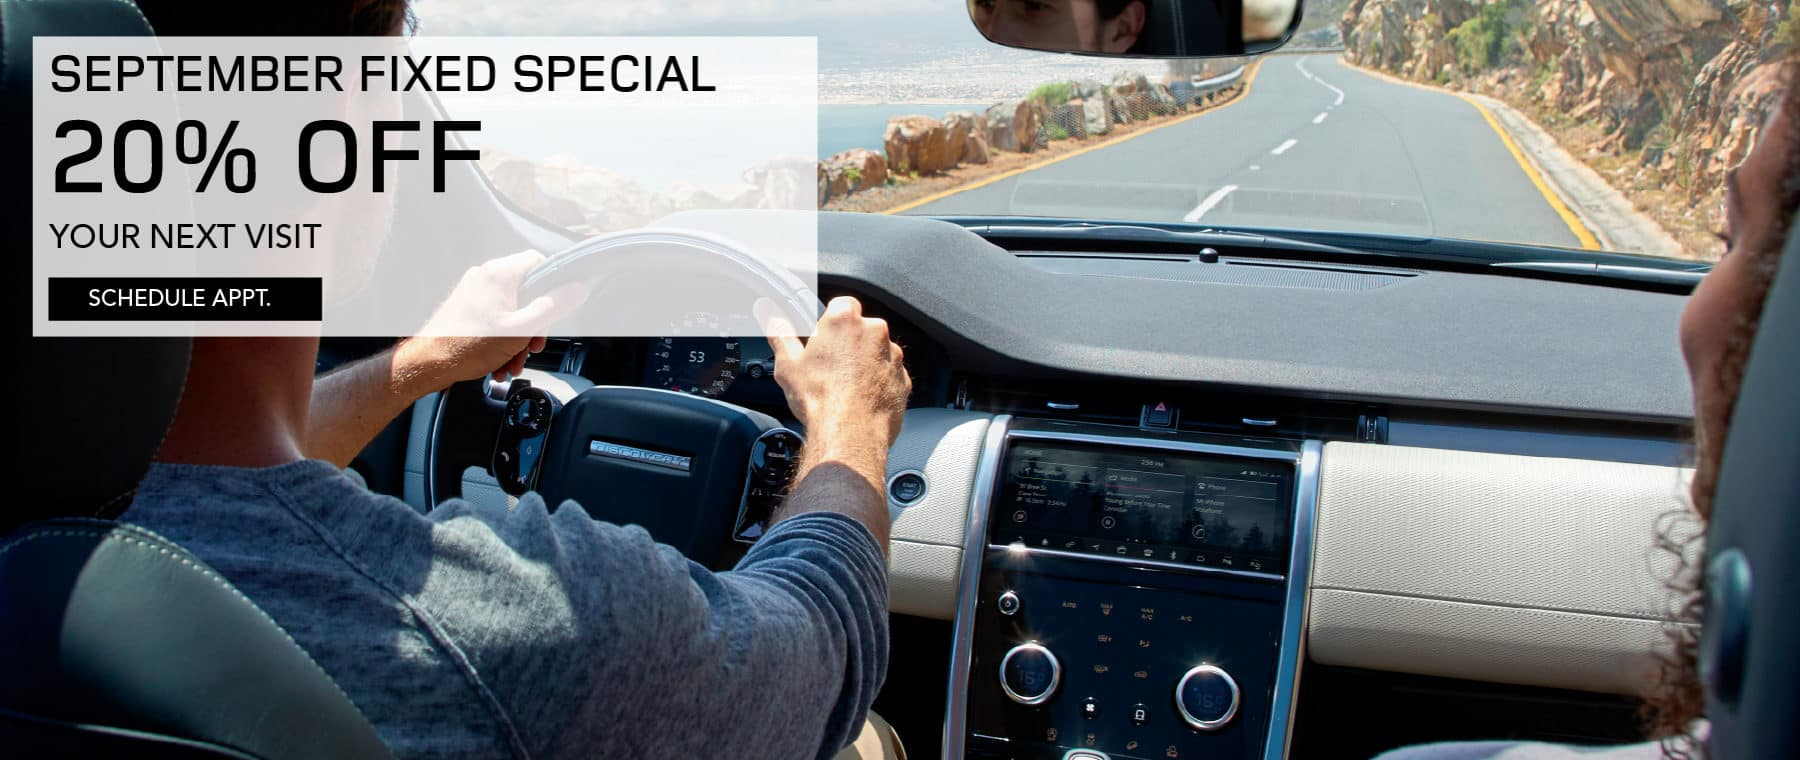 SEPTEMBER FIXED SPECIAL. 20 PERCENT OFF YOUR NEXT VISIT. SCHEDULE APPOINTMENT. IMAGE OF THE INSIDE OF THE LAND ROVER DEFENDER.